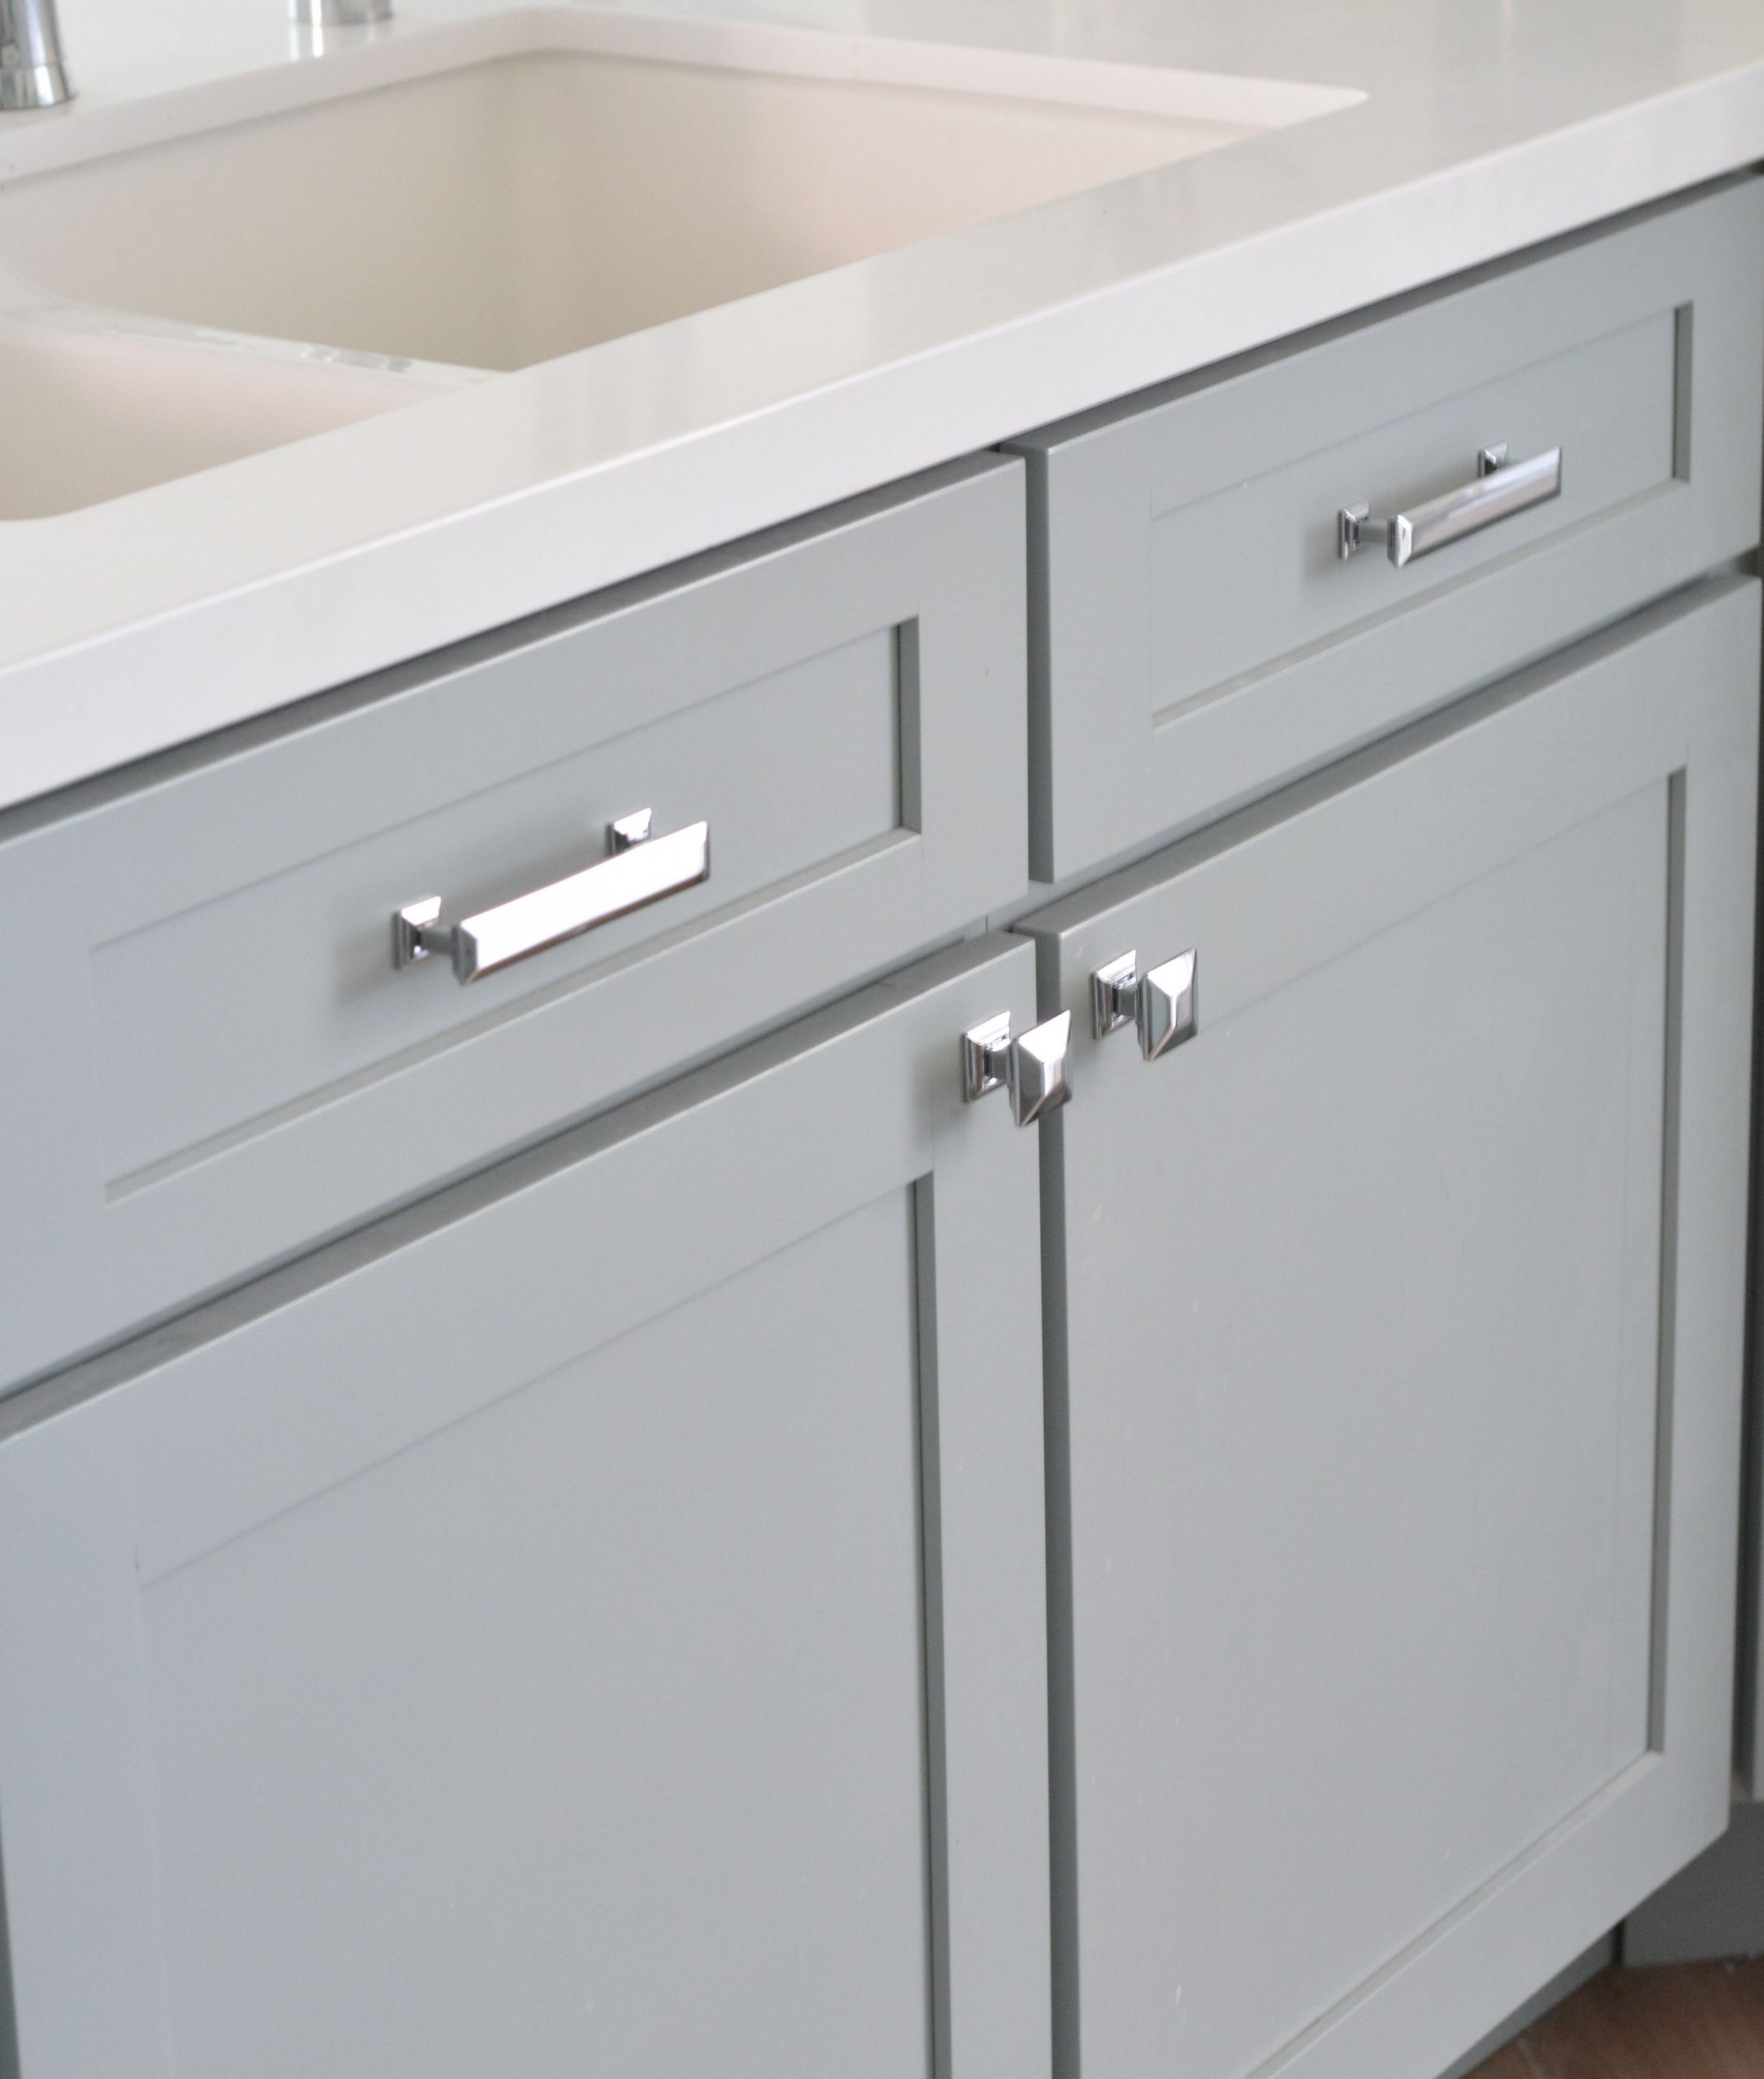 Pin on home ideas - Best Kitchen Cabinet Handles